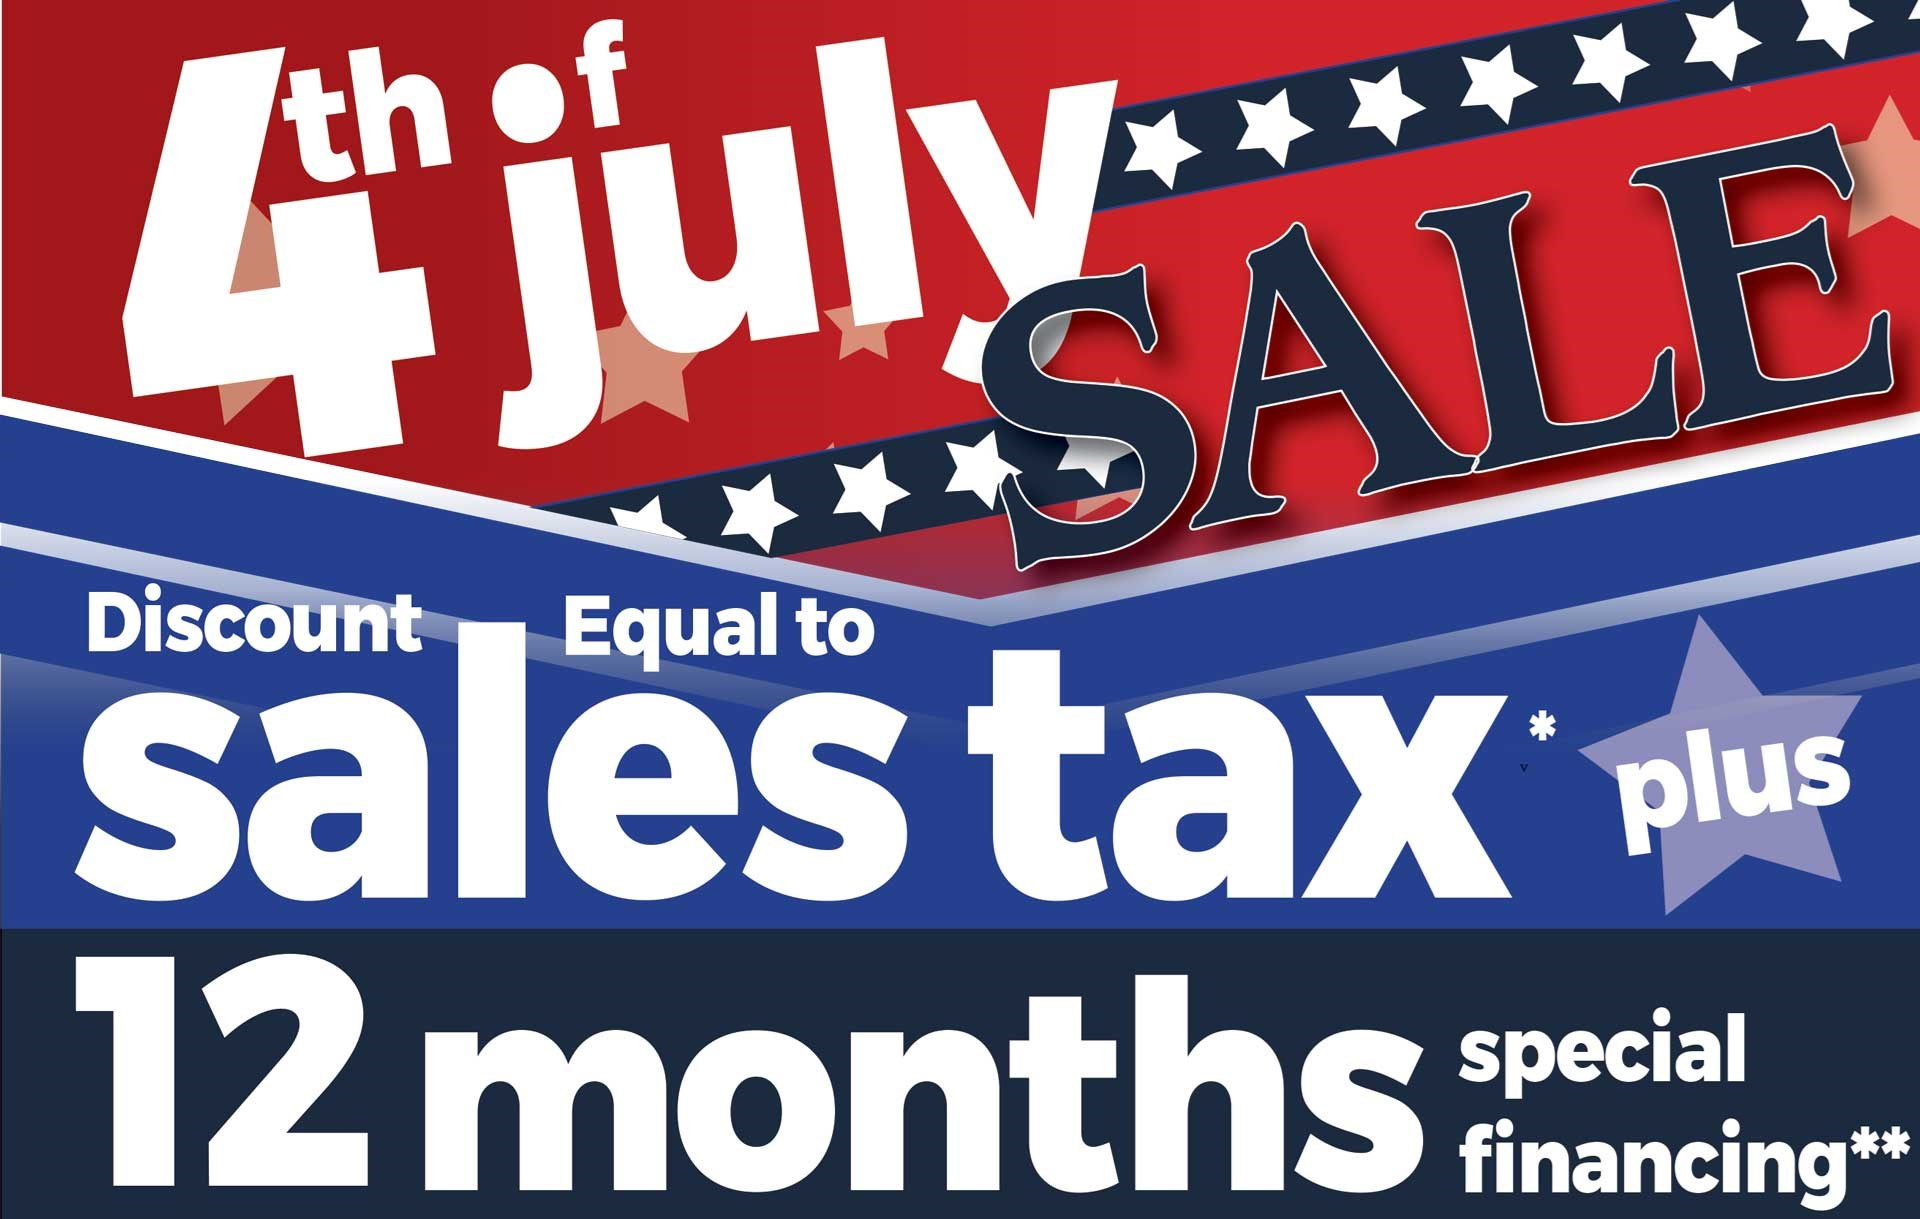 July 4th Sale! Discount Equal to the Sales Tax Plus 12 Months Special Financing